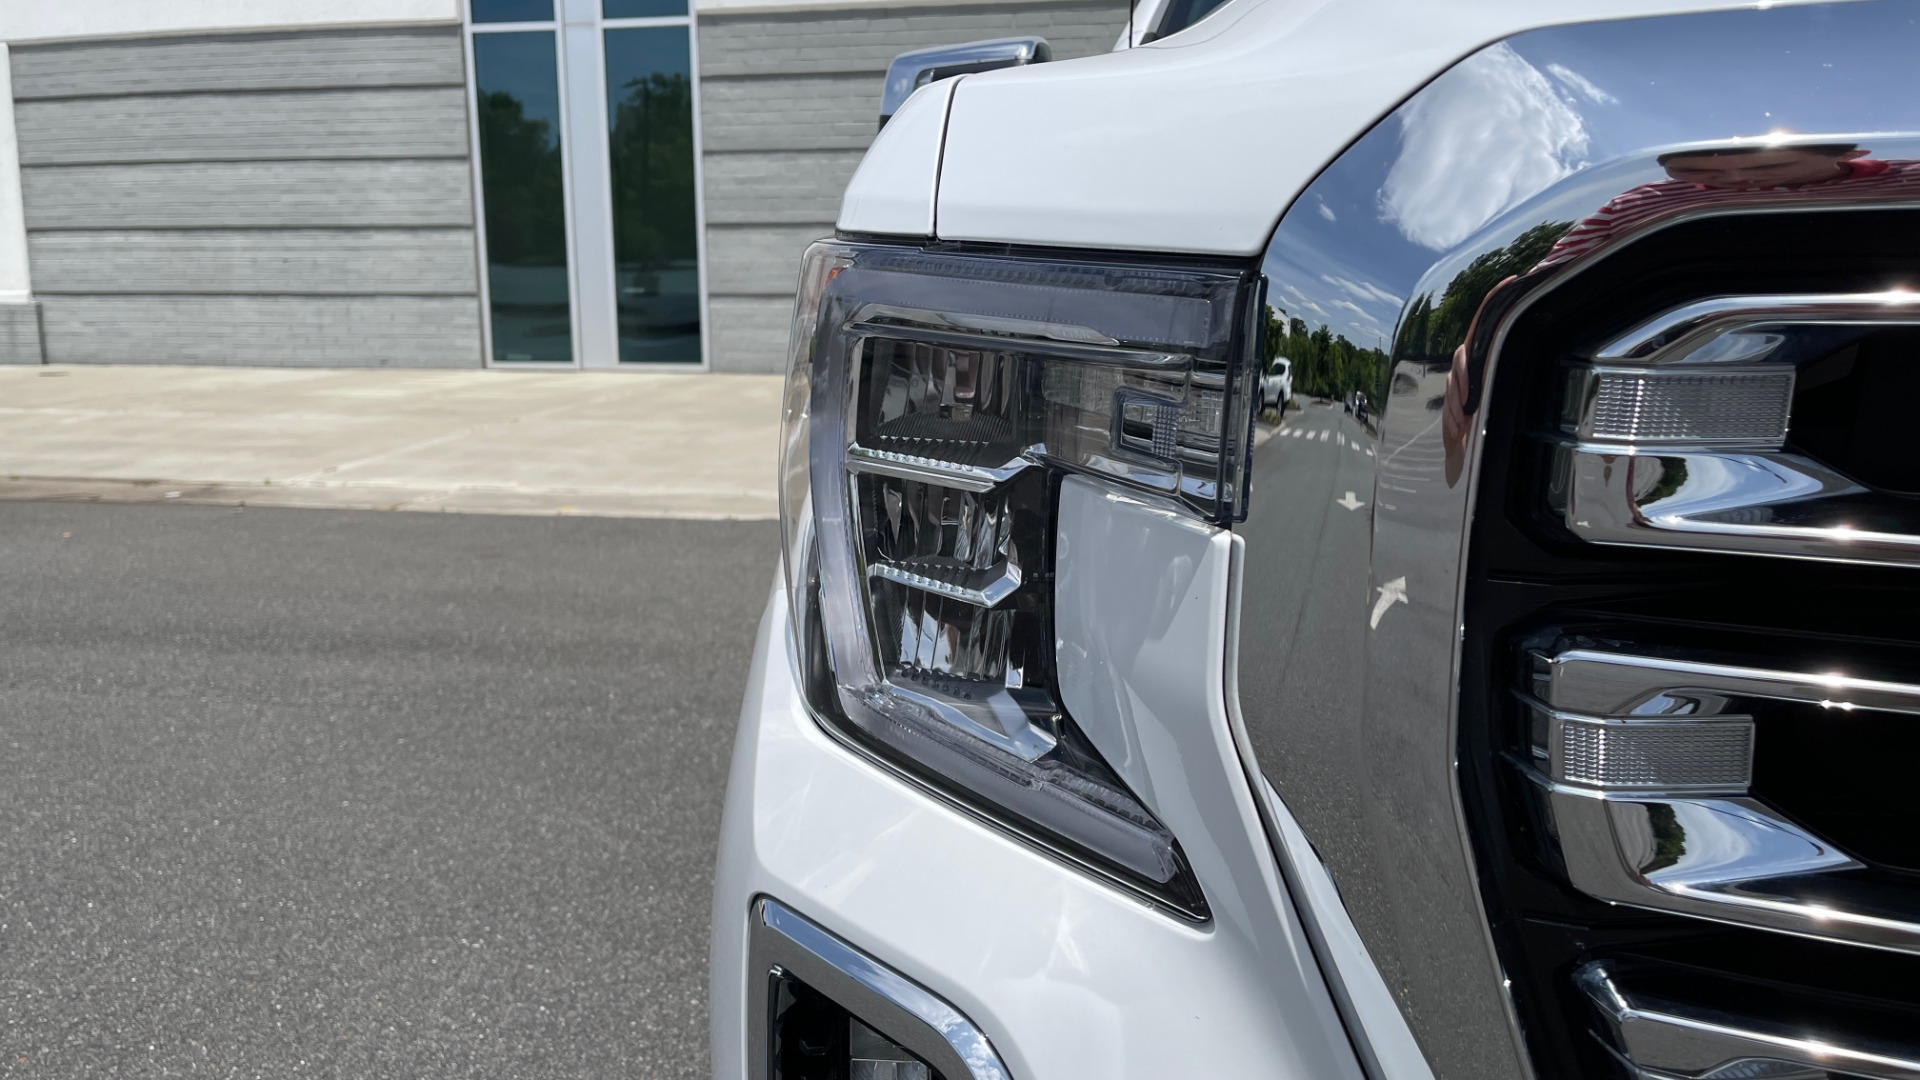 Used 2019 GMC SIERRA 1500 SLT 4X4 CREWCAB / 5.3L V8 / 8-SPD AUTO / NAV / BOSE / REARVIEW for sale $49,999 at Formula Imports in Charlotte NC 28227 14